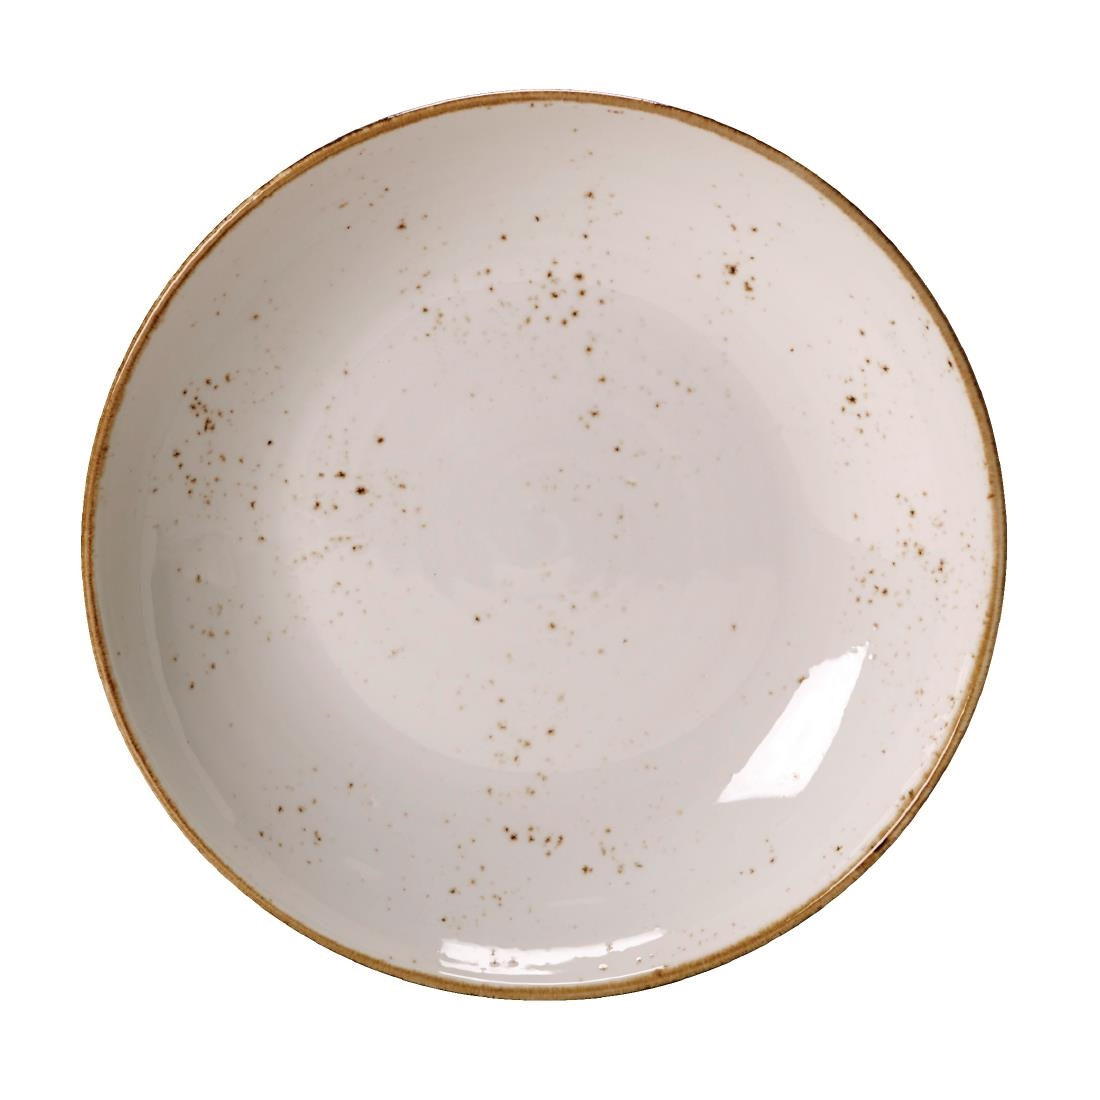 ... Steelite Craft Coupe Plate White - 28cm 11  sc 1 st  Nisbets & Steelite Craft White Coupe Plate 280mm - V576 - Buy Online at Nisbets